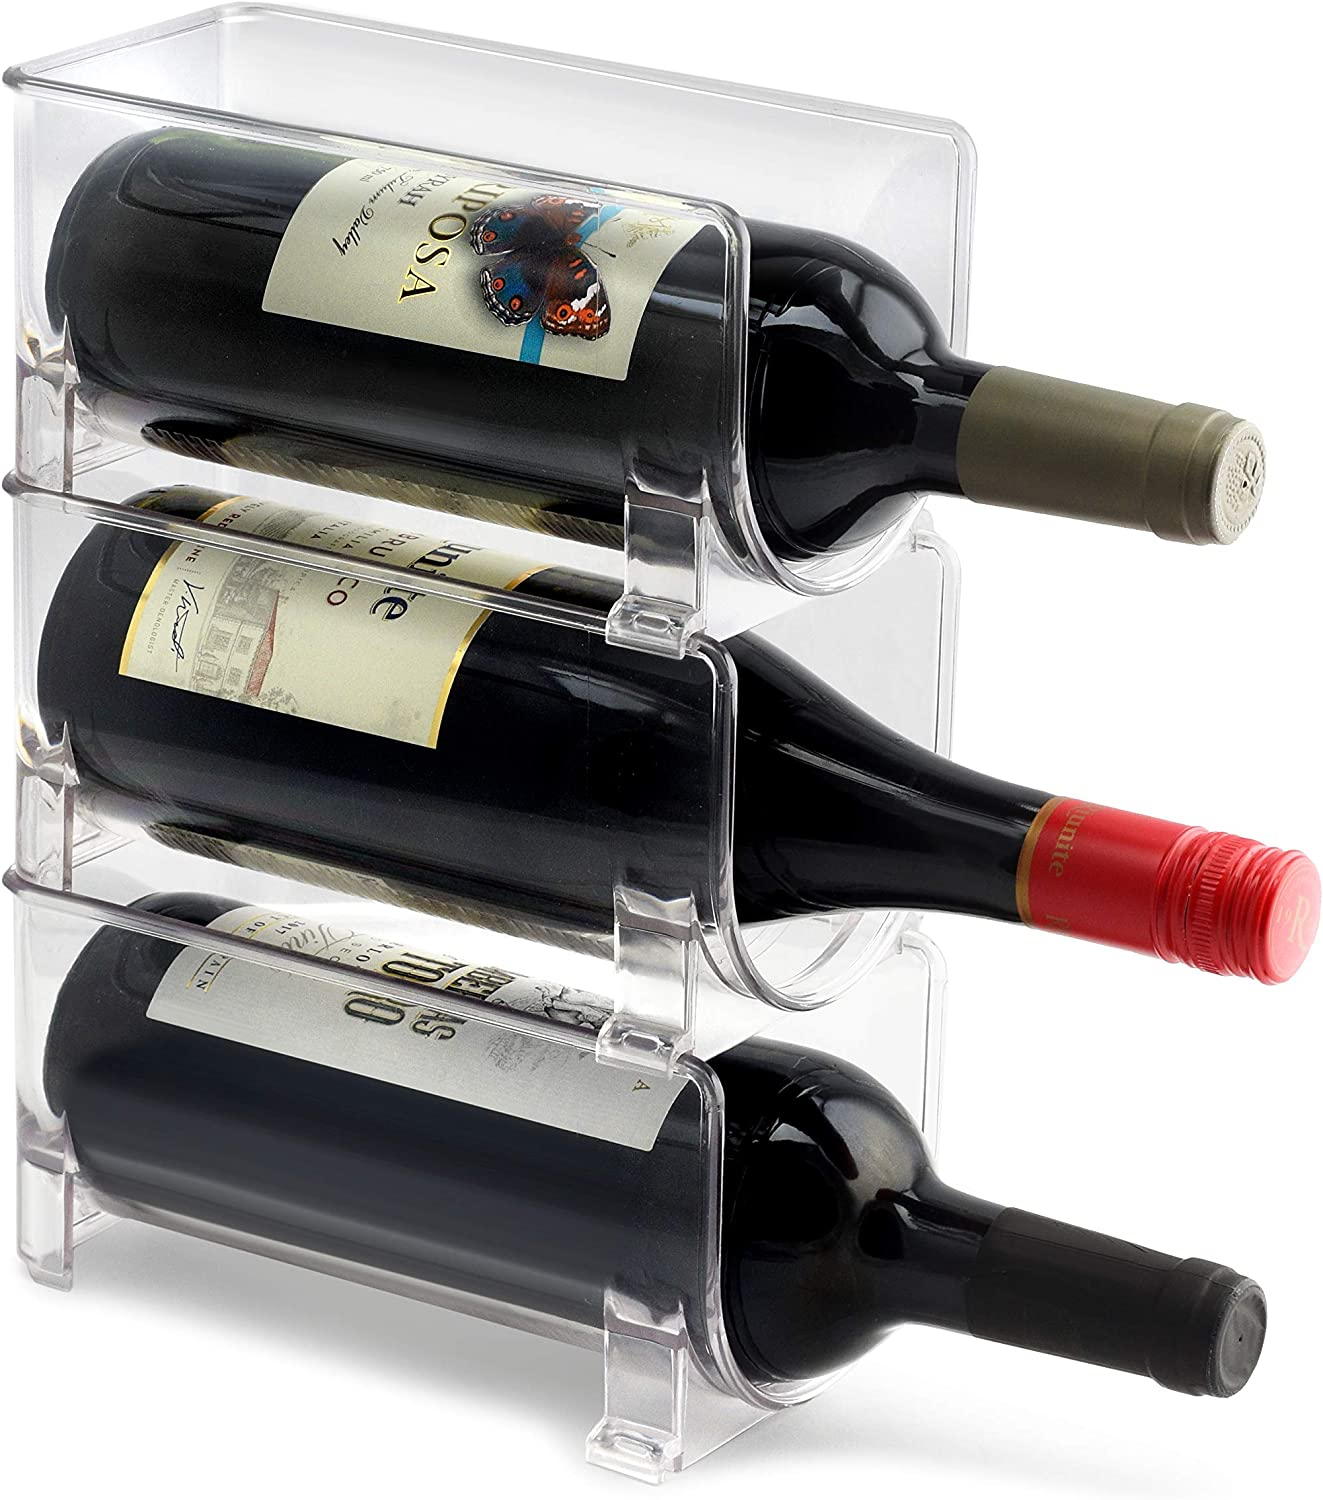 ELTOW Modular Plastic Wine Rack (3-Pack) Stackable Display and Storage System - Clear, Heavy-Duty PET Plastic - Home Kitchen, Bar, Countertop, or Dining Room Use